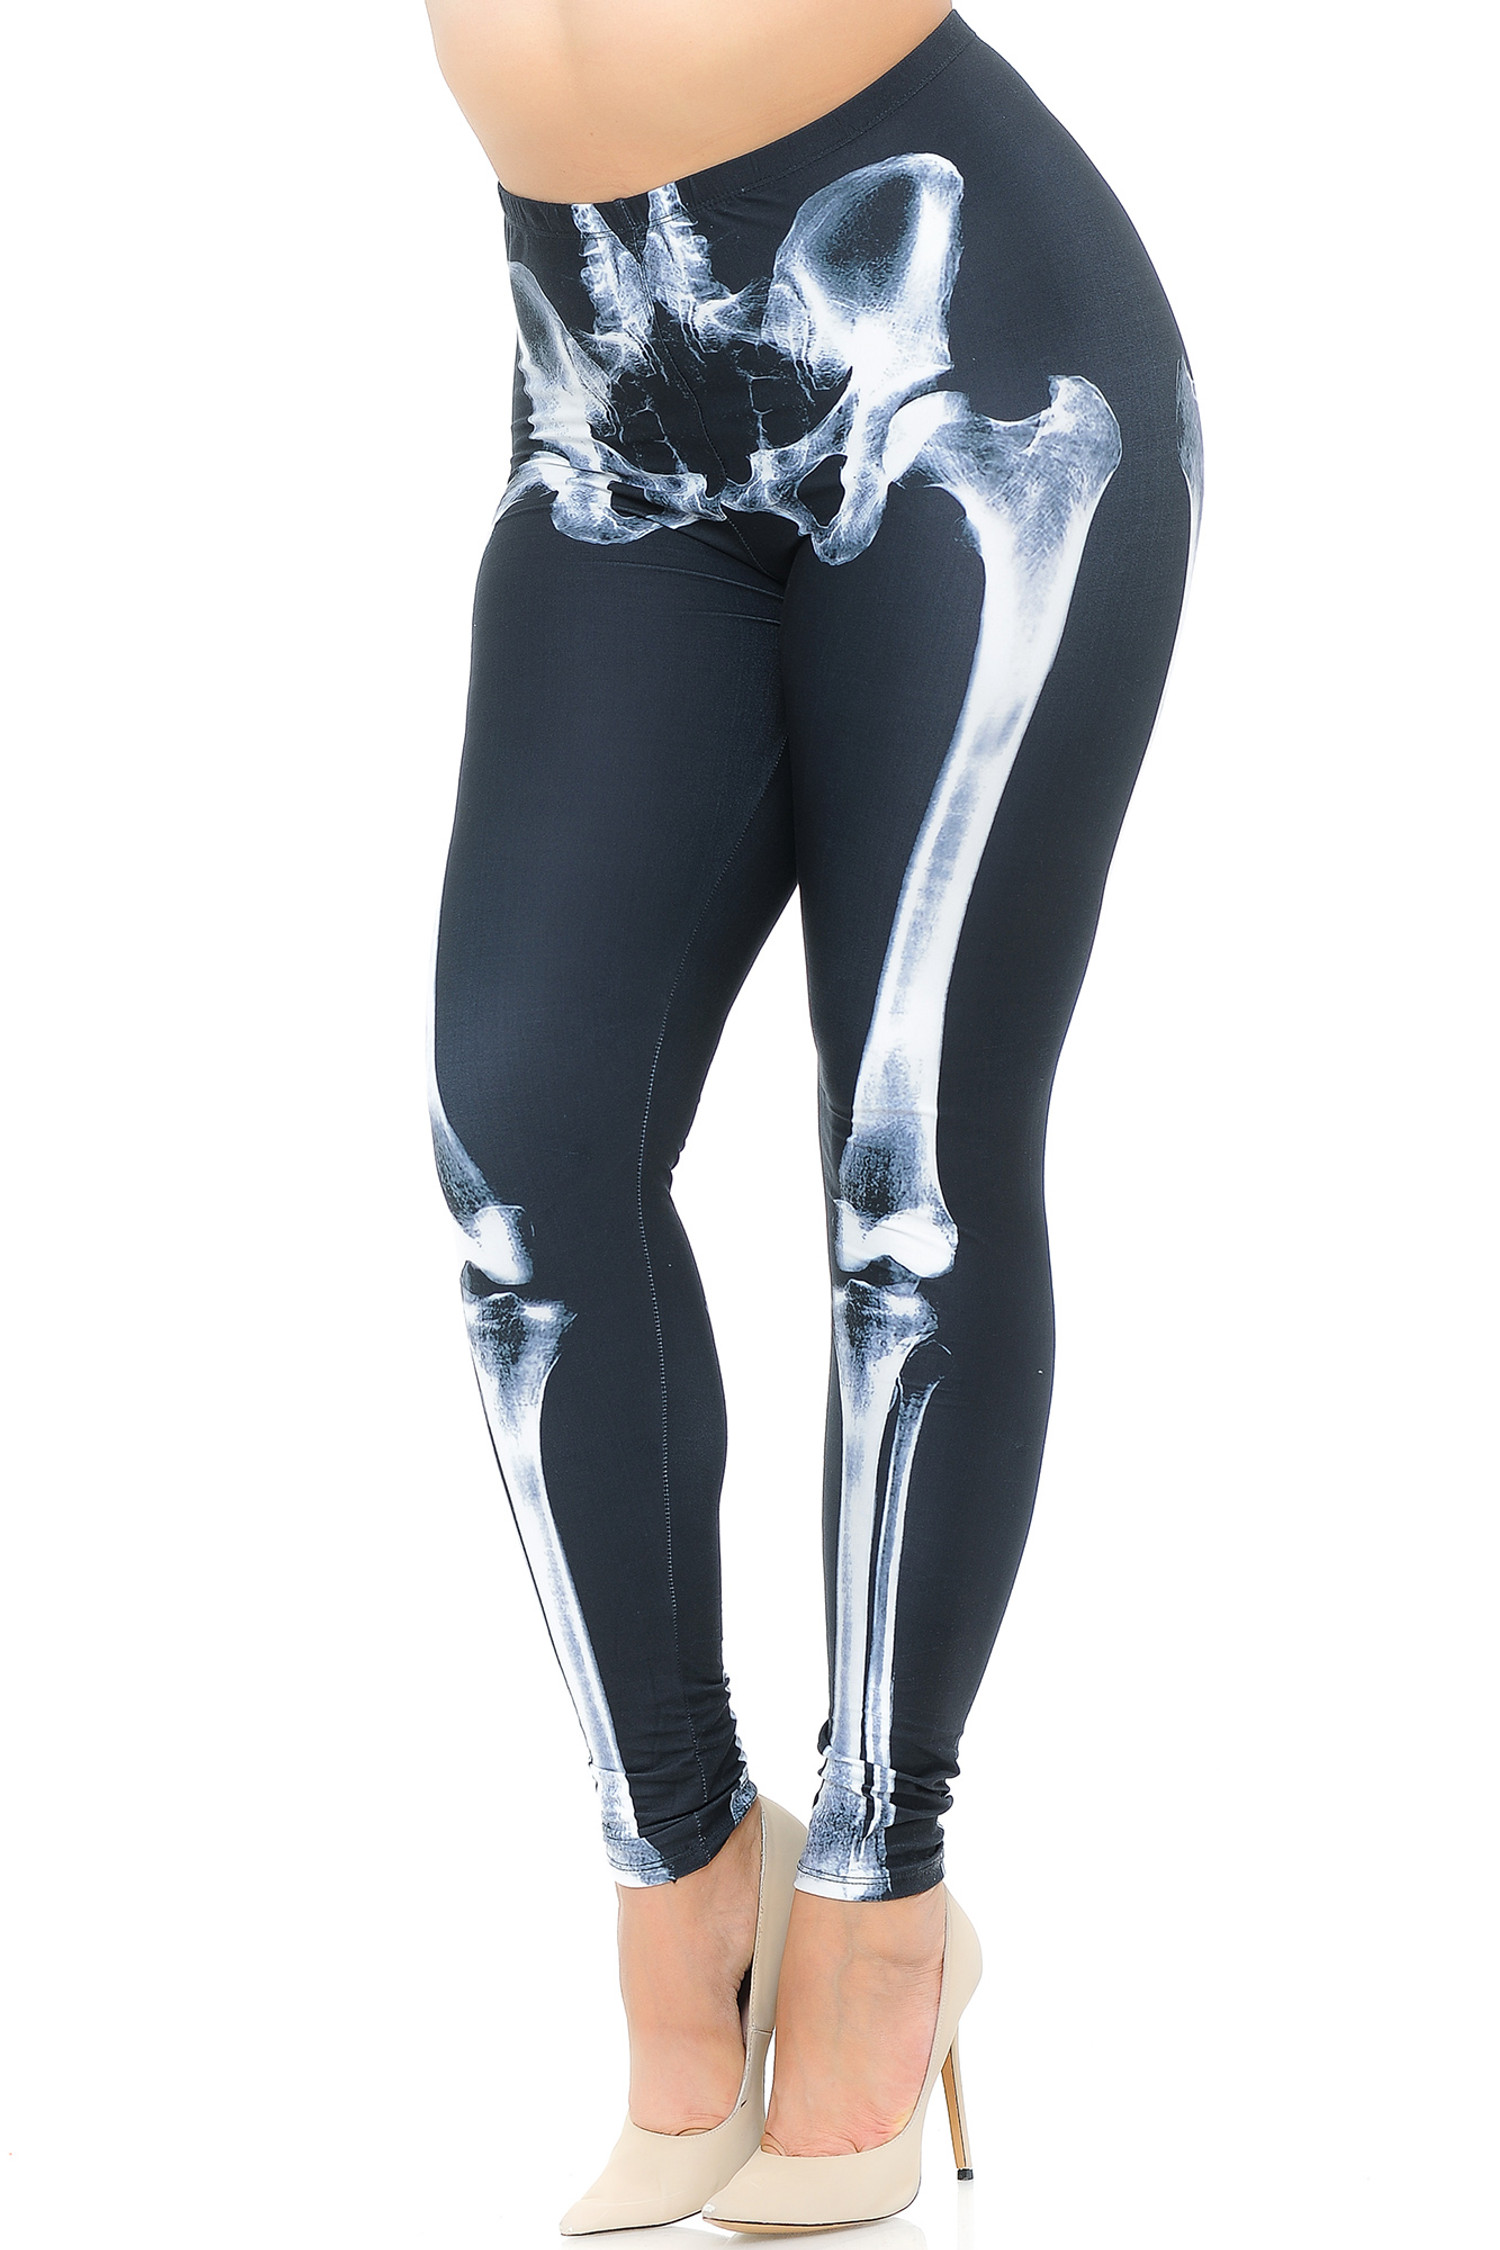 Creamy Soft X-Ray Skeleton Bones Plus Size Leggings - USA Fashion™